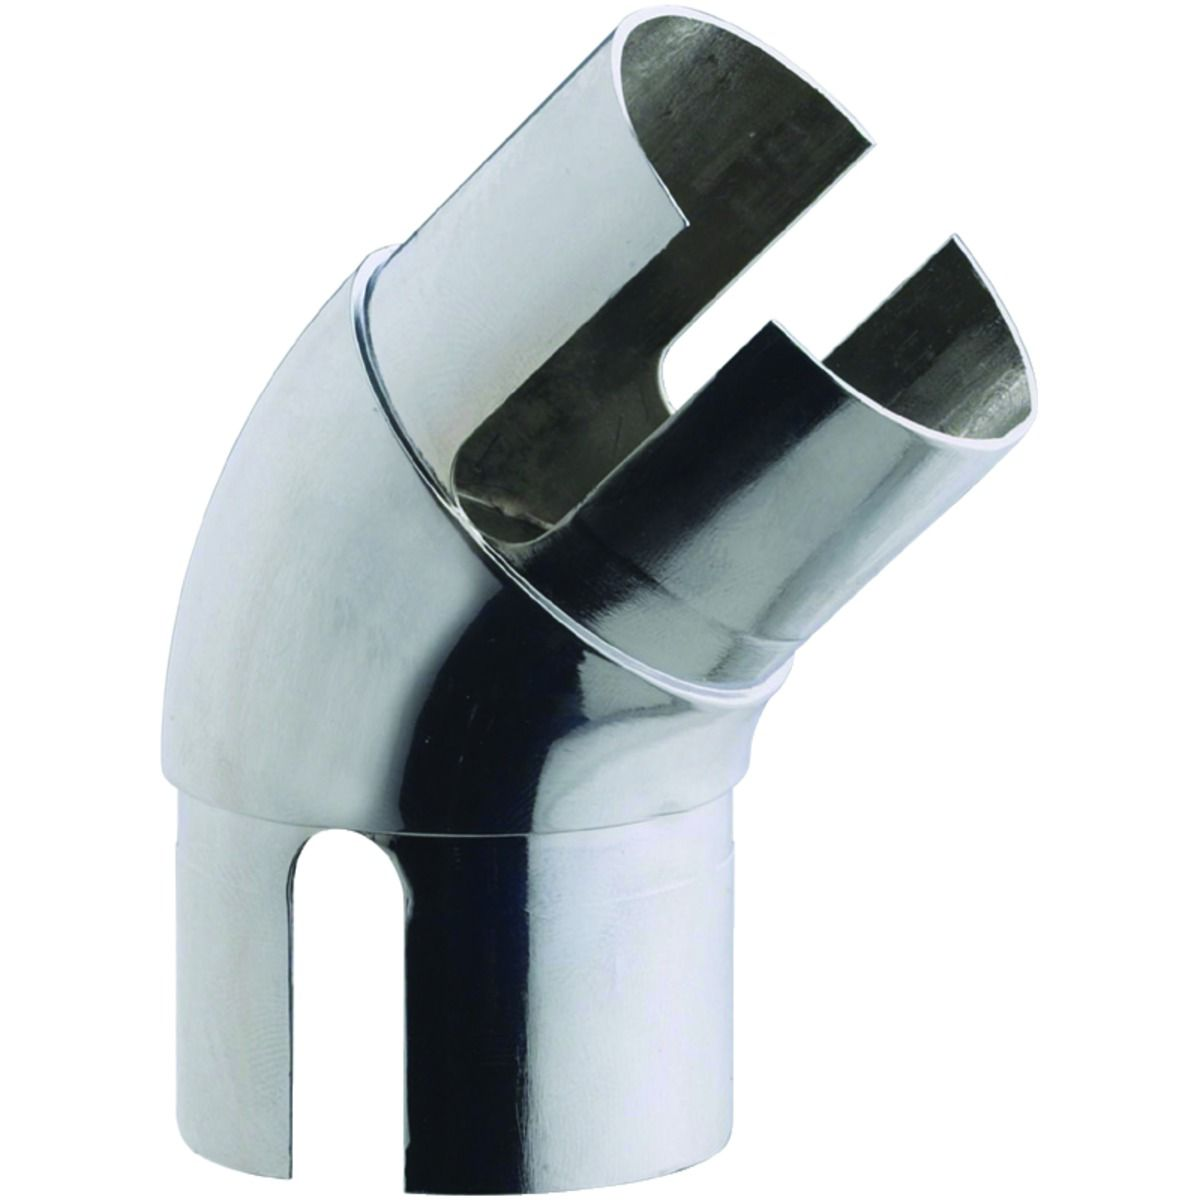 Compare prices for Chrome Handrail 135 Degree Elbow